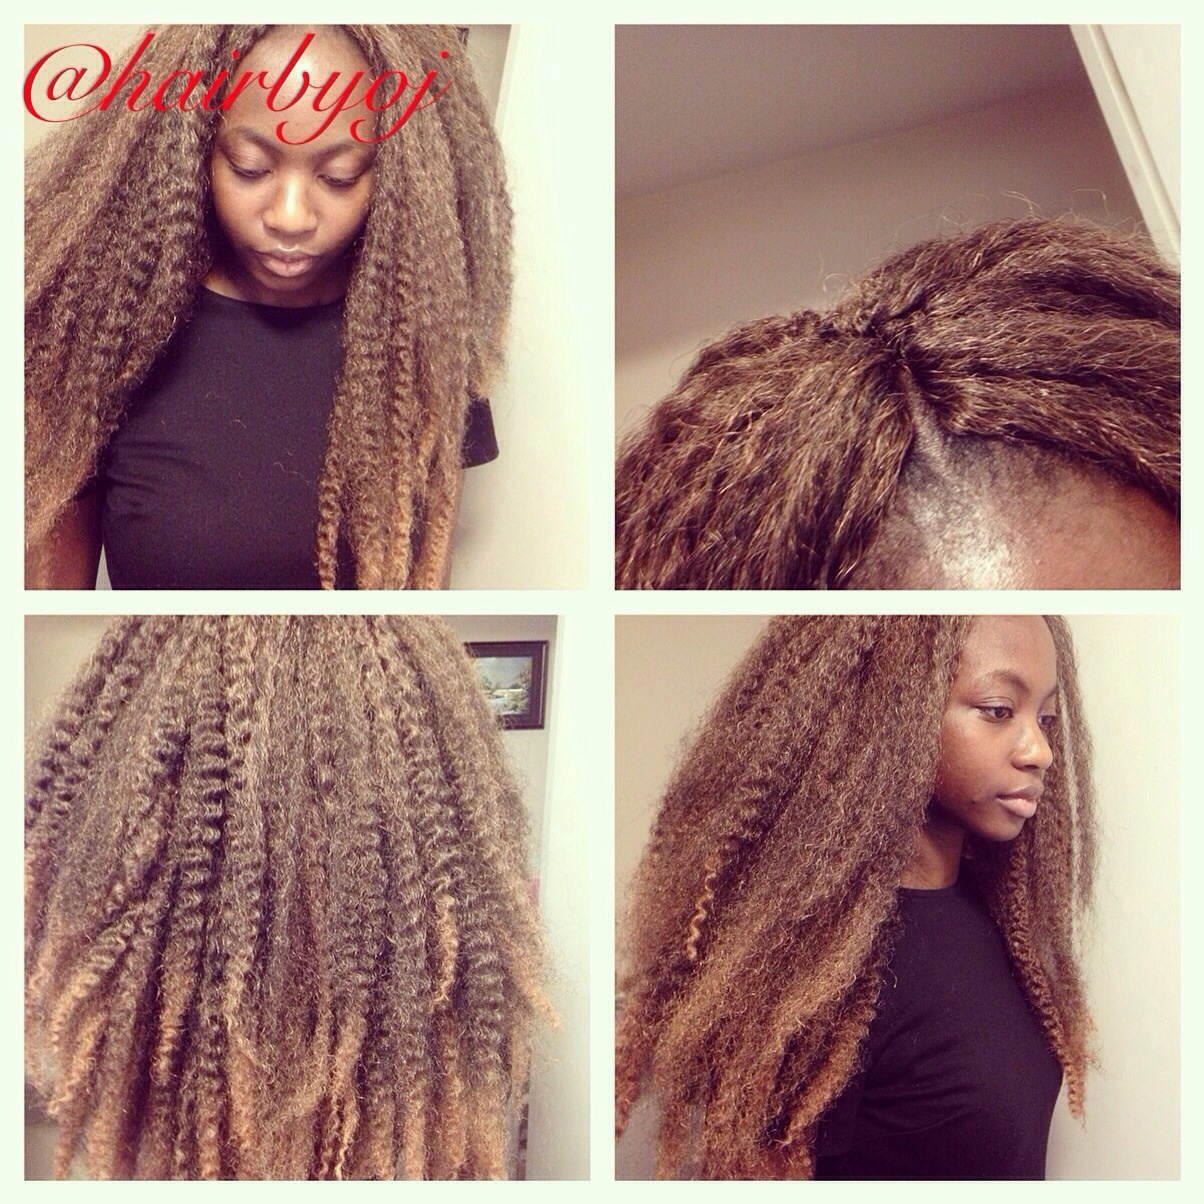 Crochet Hair Blonde : Waist length ombre crochet braids with Marley hair and middle ...